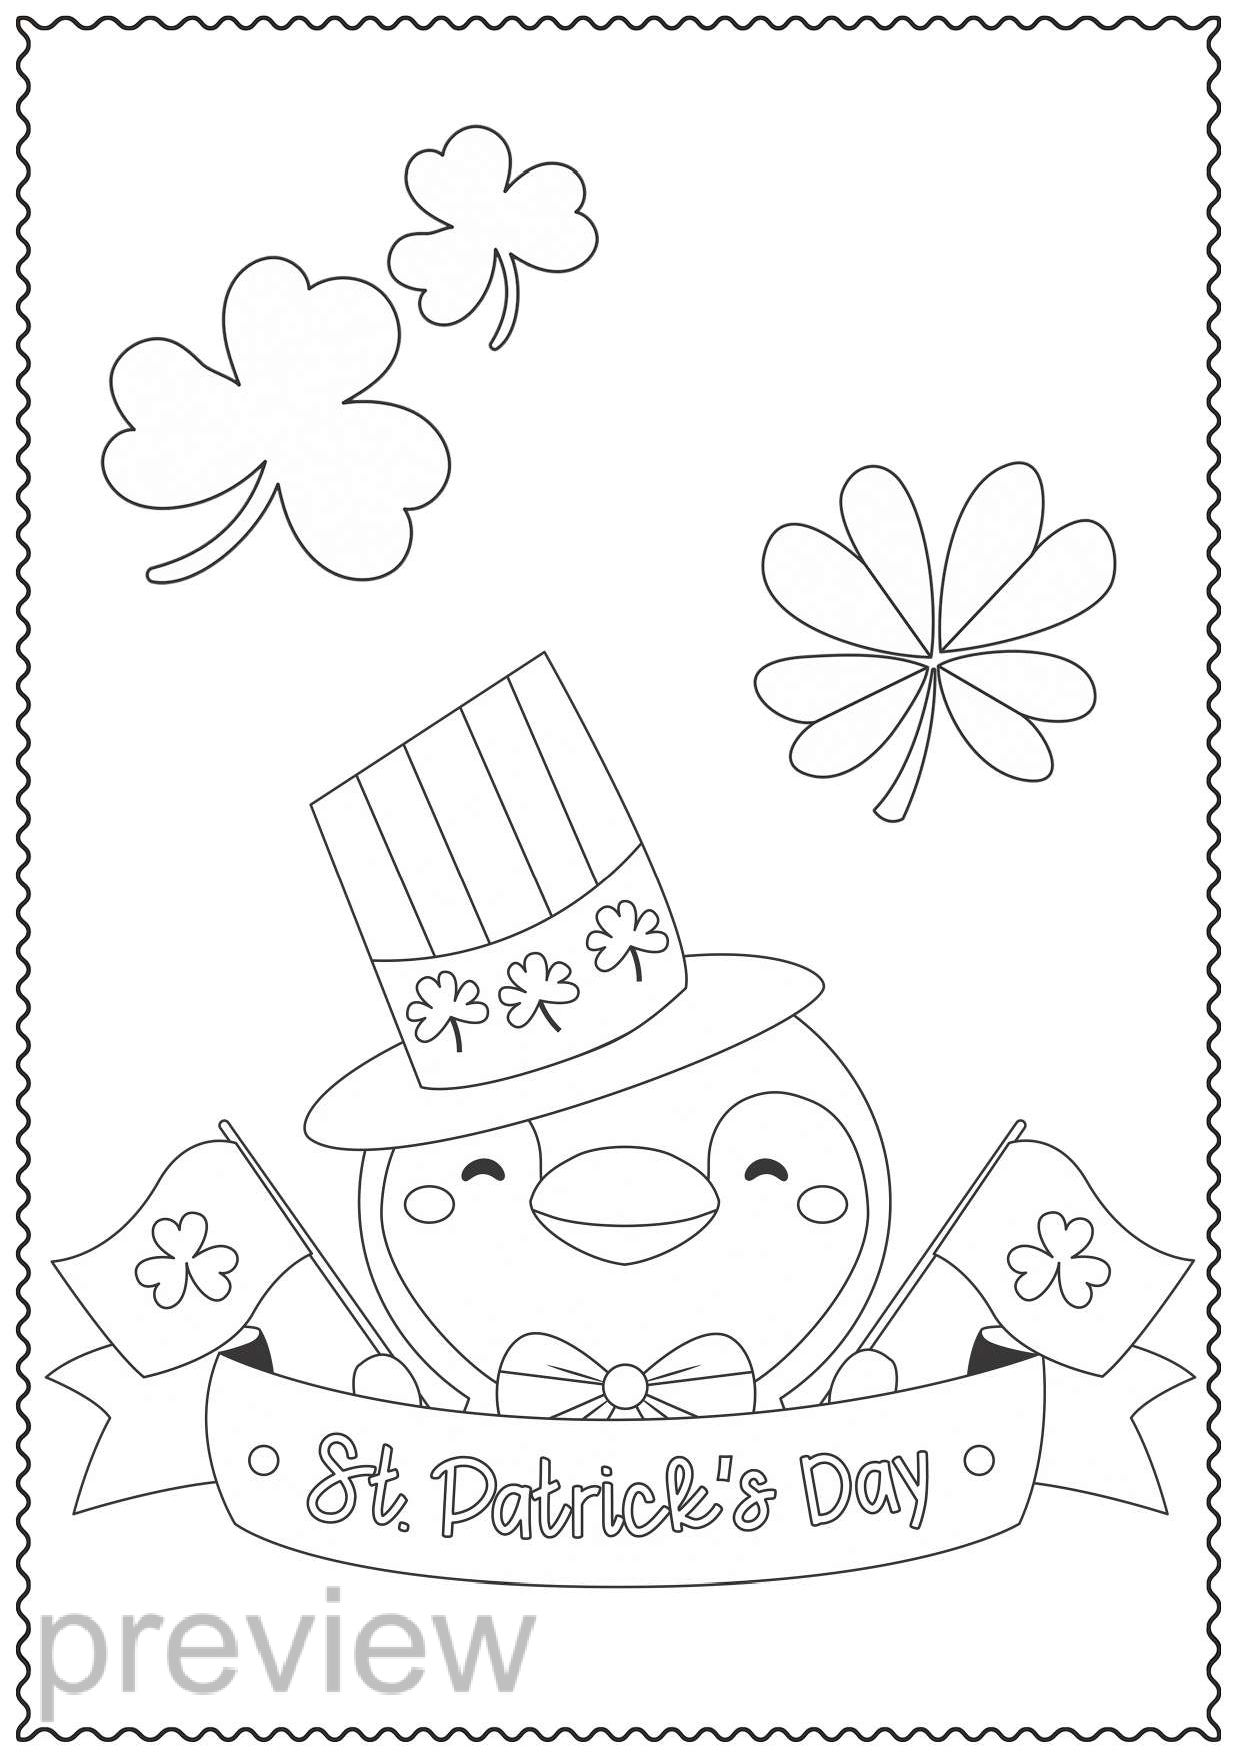 St Patrick S Day Coloring Pages For Kids St Patricks Day Etsy In 2021 Halloween Coloring Pages Coloring Pages Planet Coloring Pages [ 1755 x 1240 Pixel ]